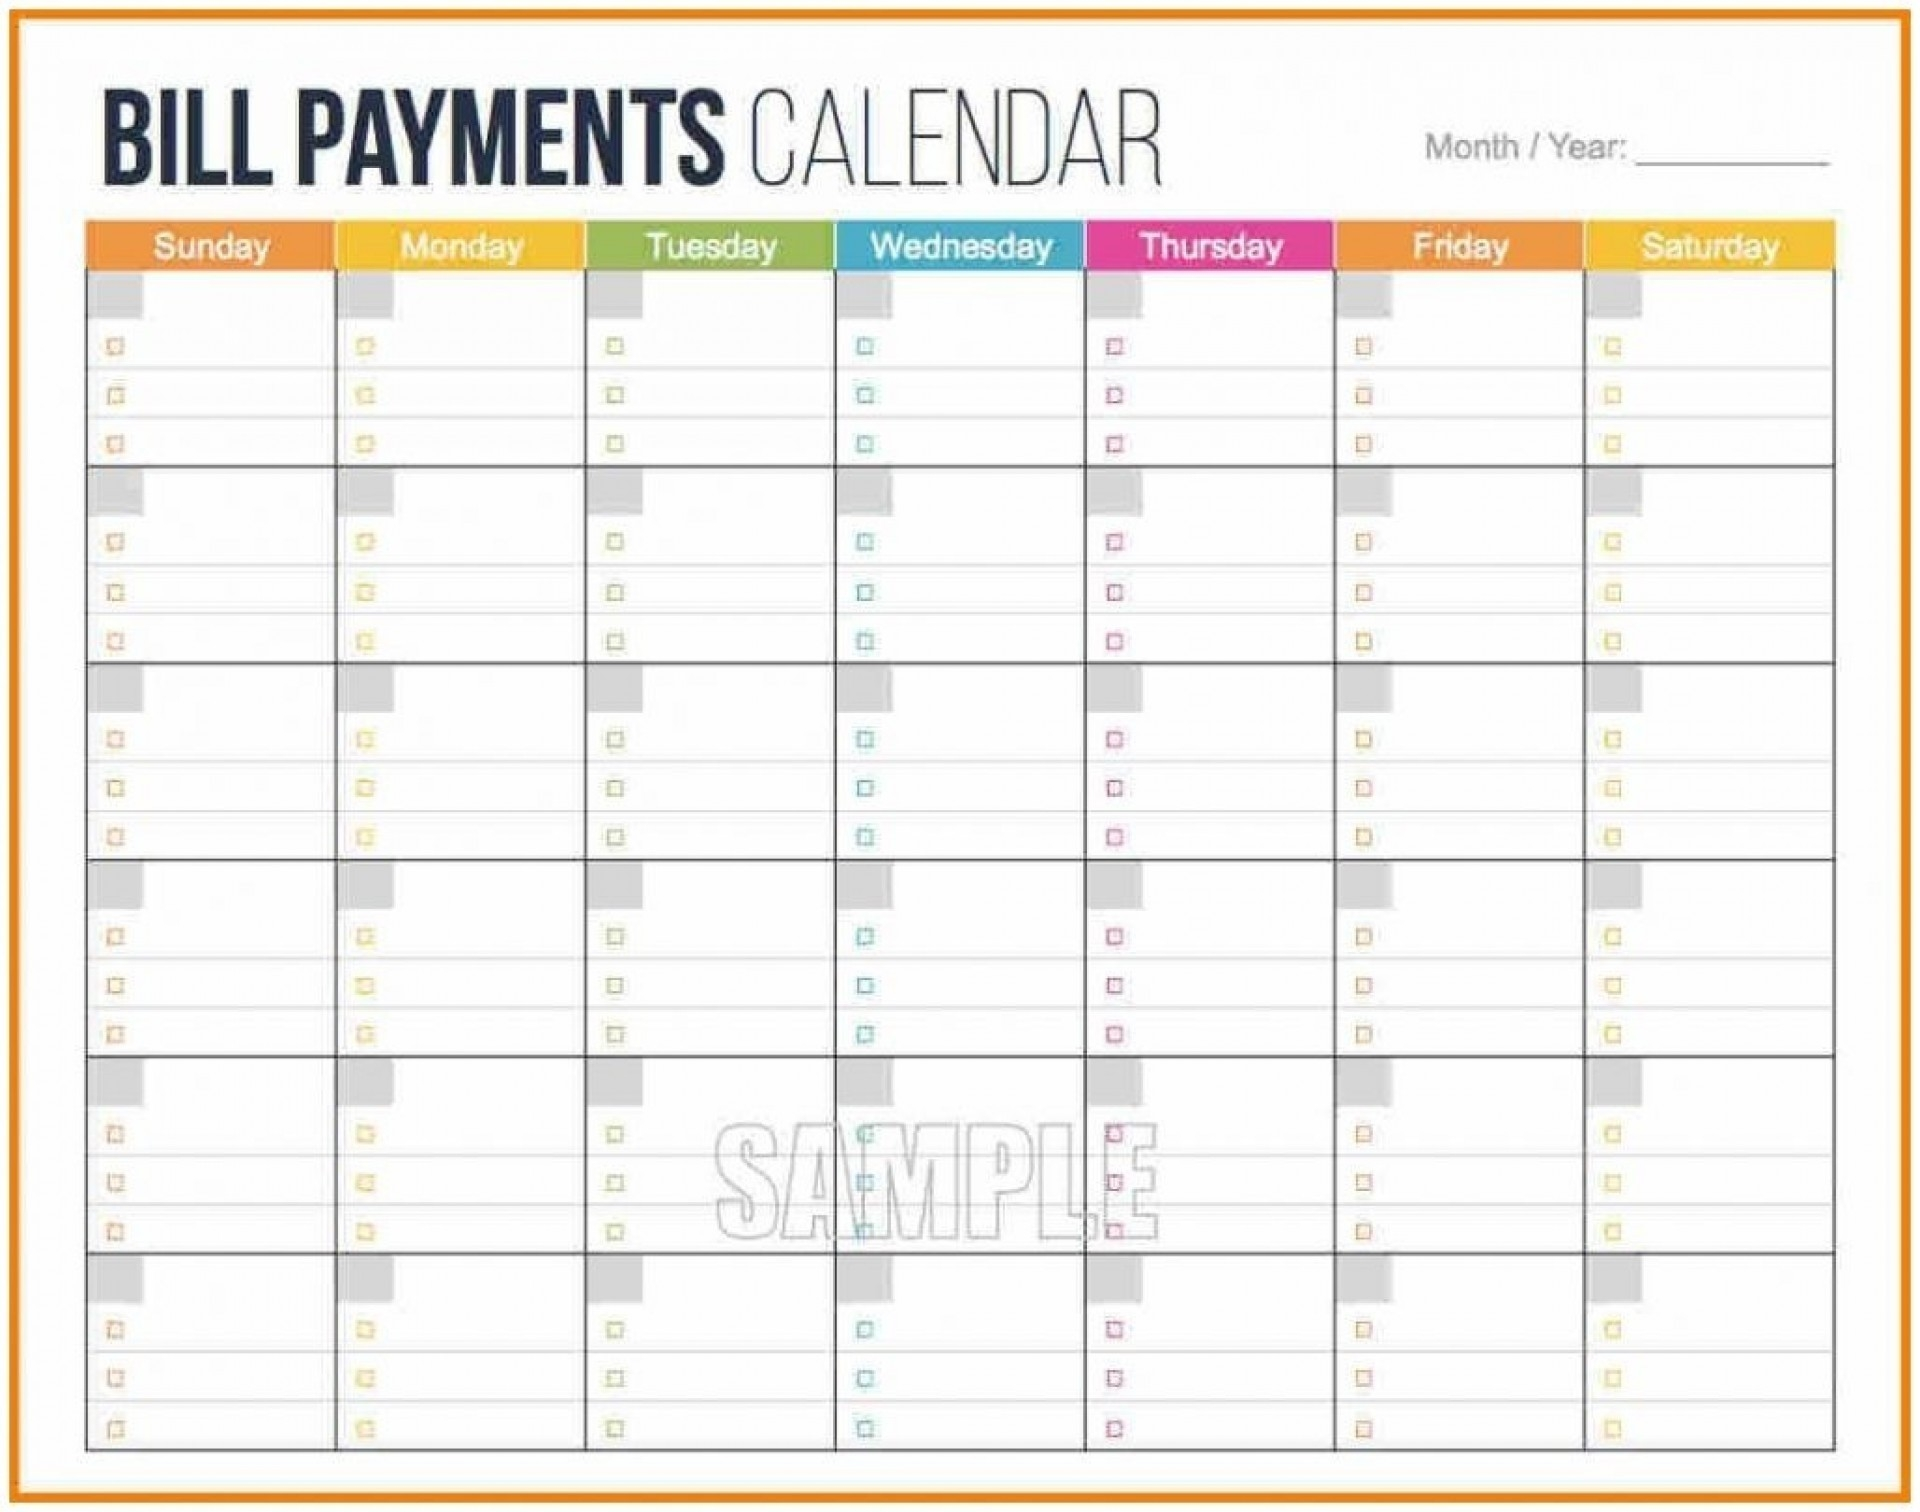 003 Bill Pay Calendar Template Ideas Paying Free Printable-Printable Calendar 2020 Monthly Bills